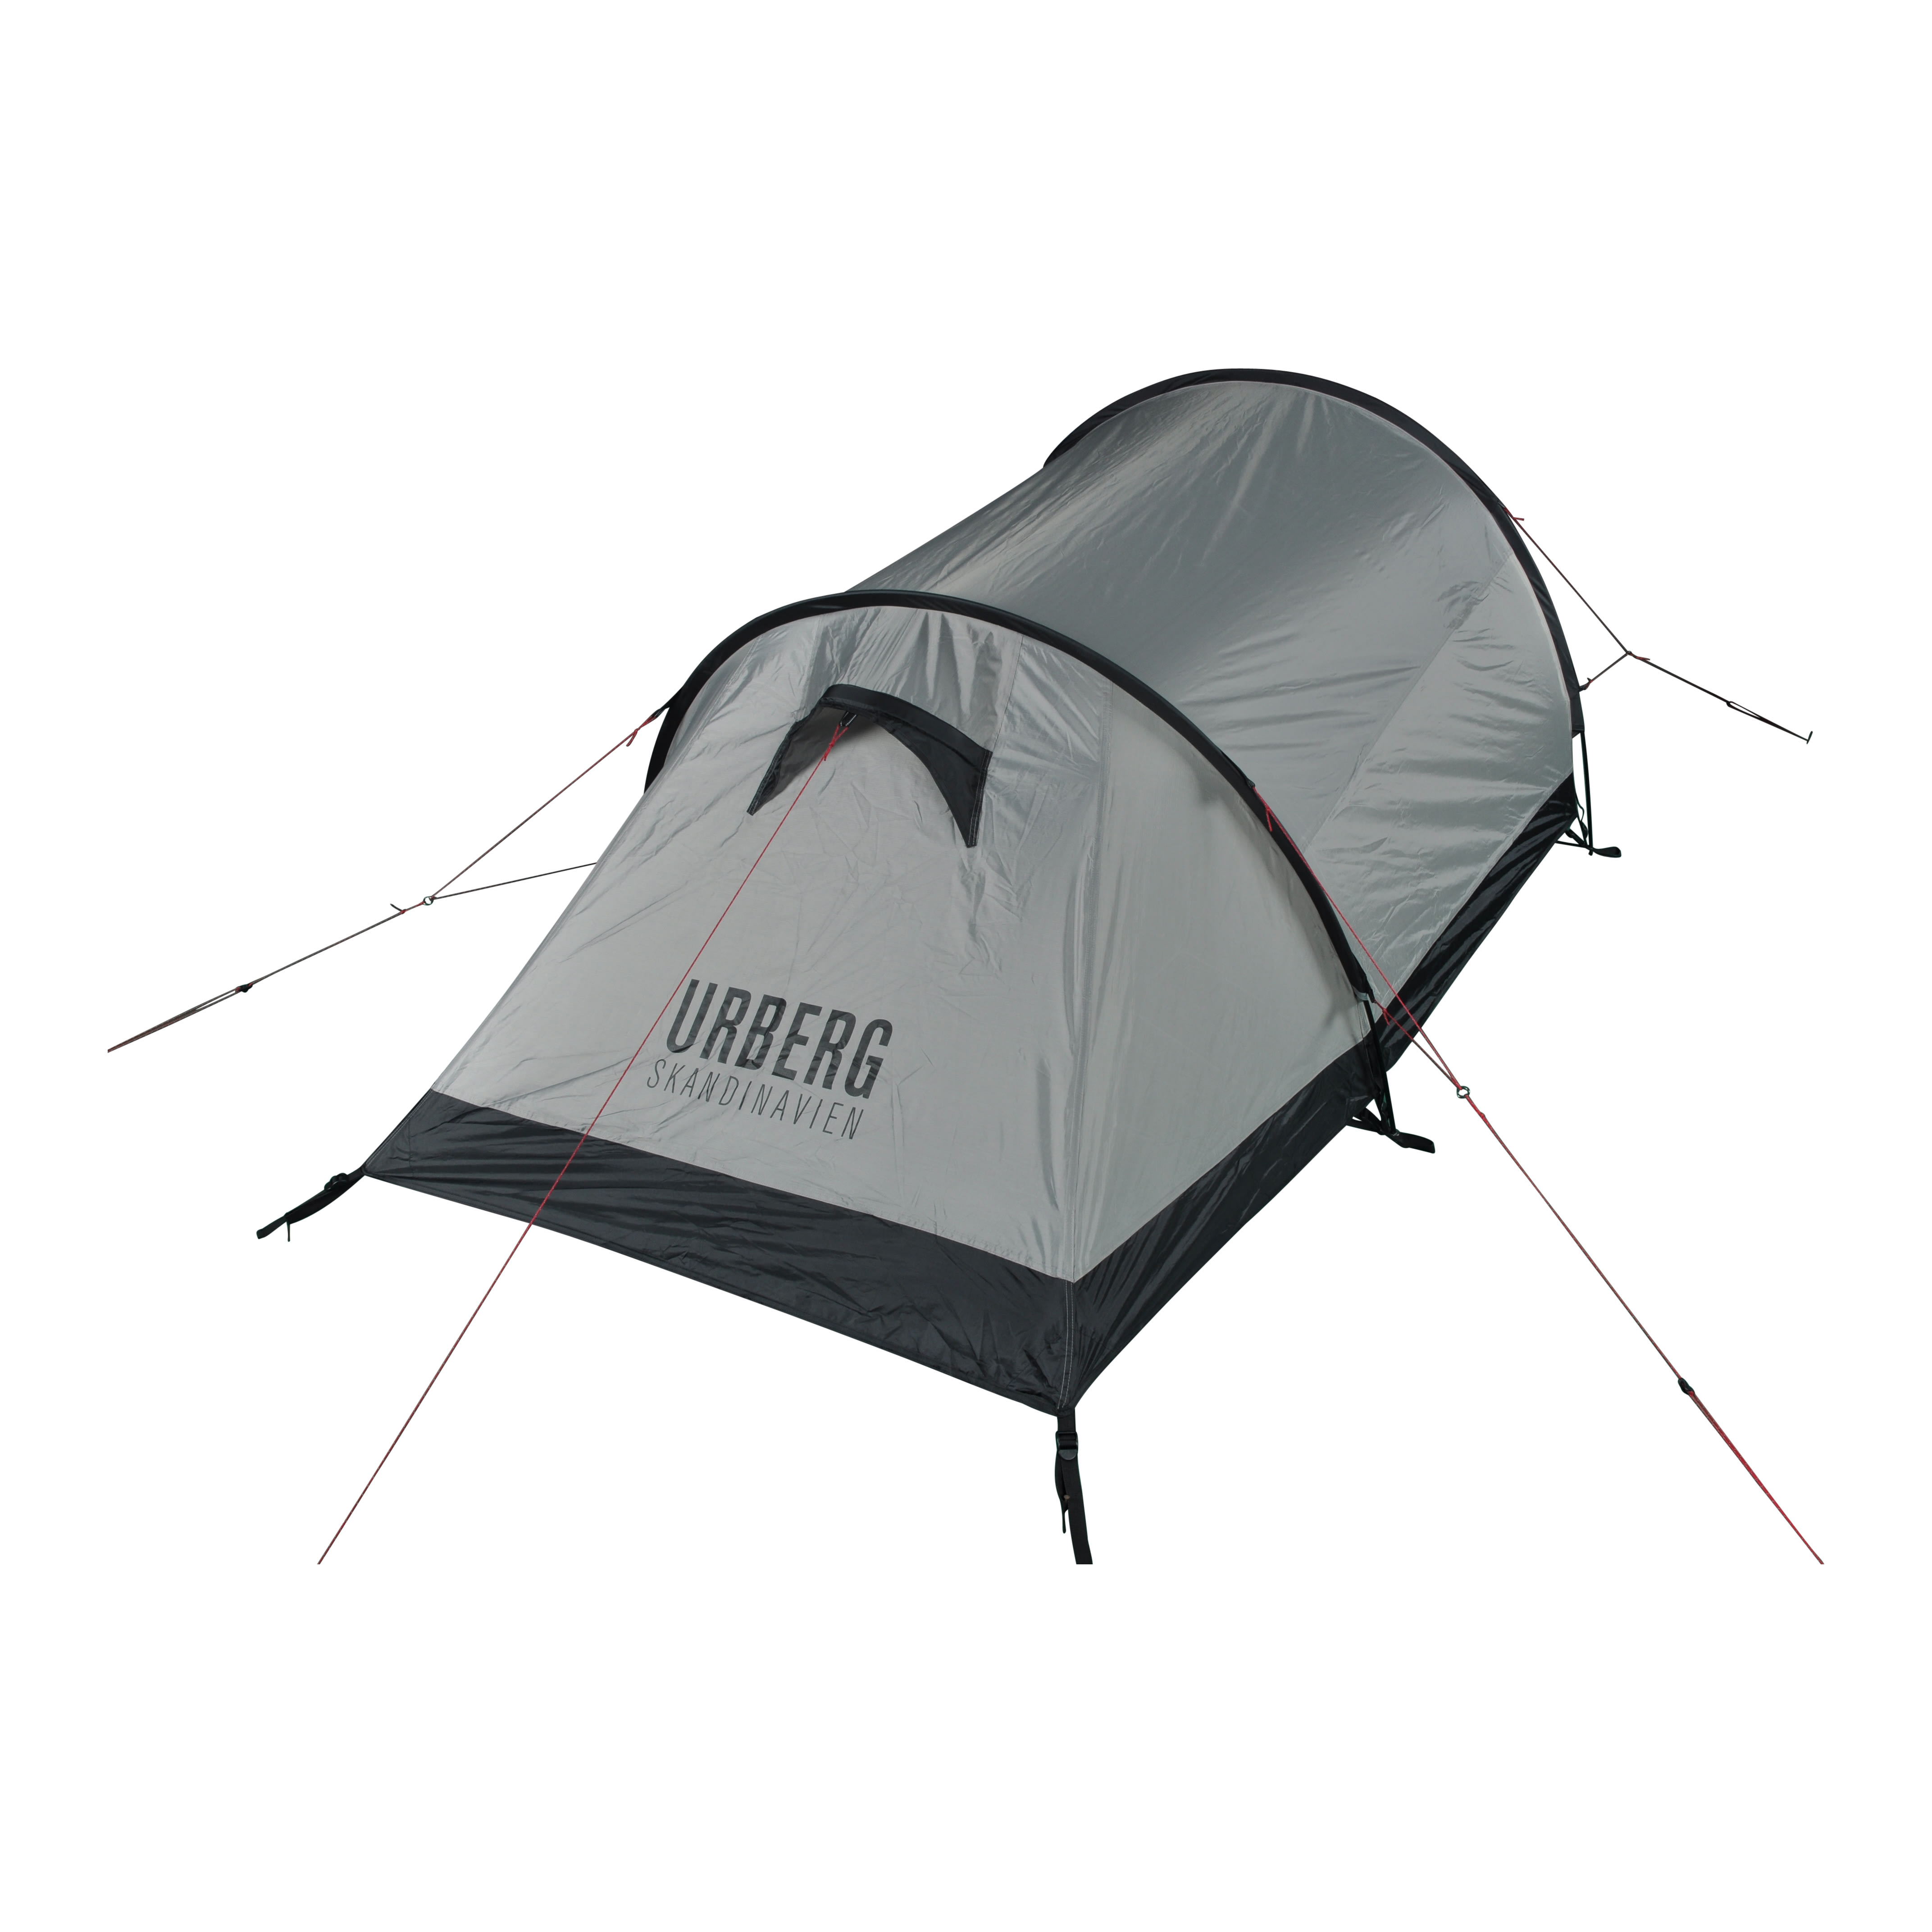 Urberg - 2-Person Tunnel Tent G4